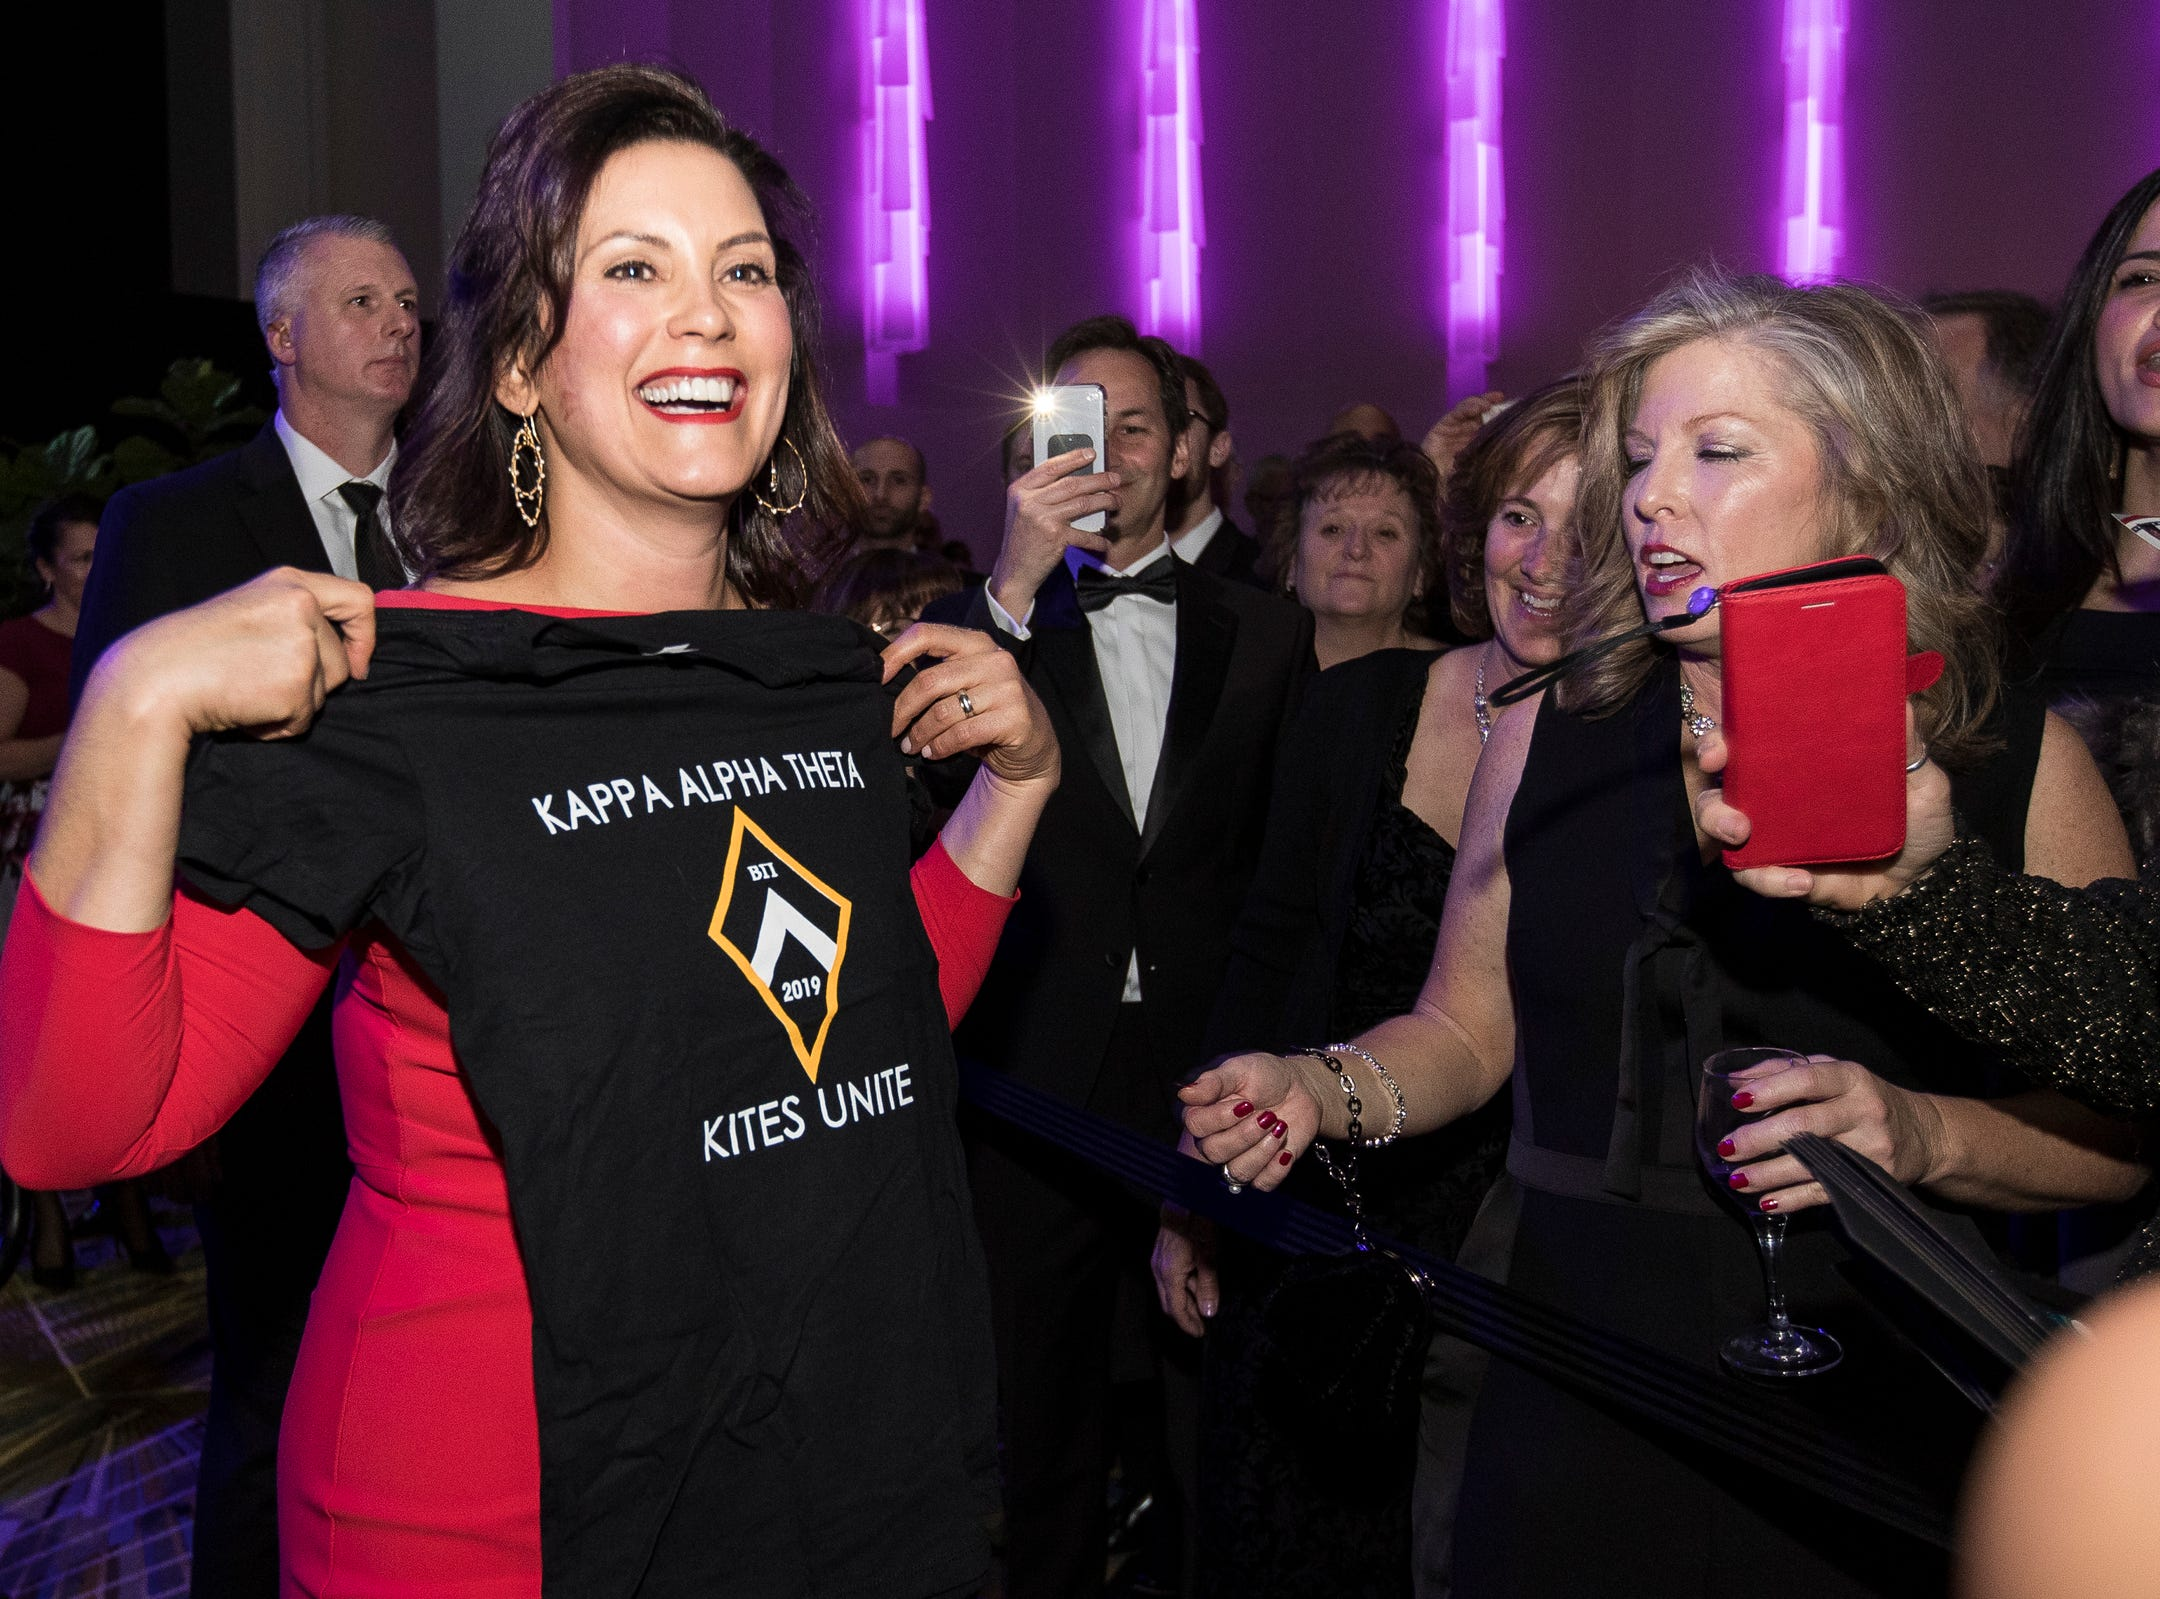 Governor Gretchen Whitmer smiles as she shows off a Kappa Alpha Theta sorority t-shirt during the inaugural ball at Cobo Center in Detroit on Tuesday, Jan. 1, 2019.